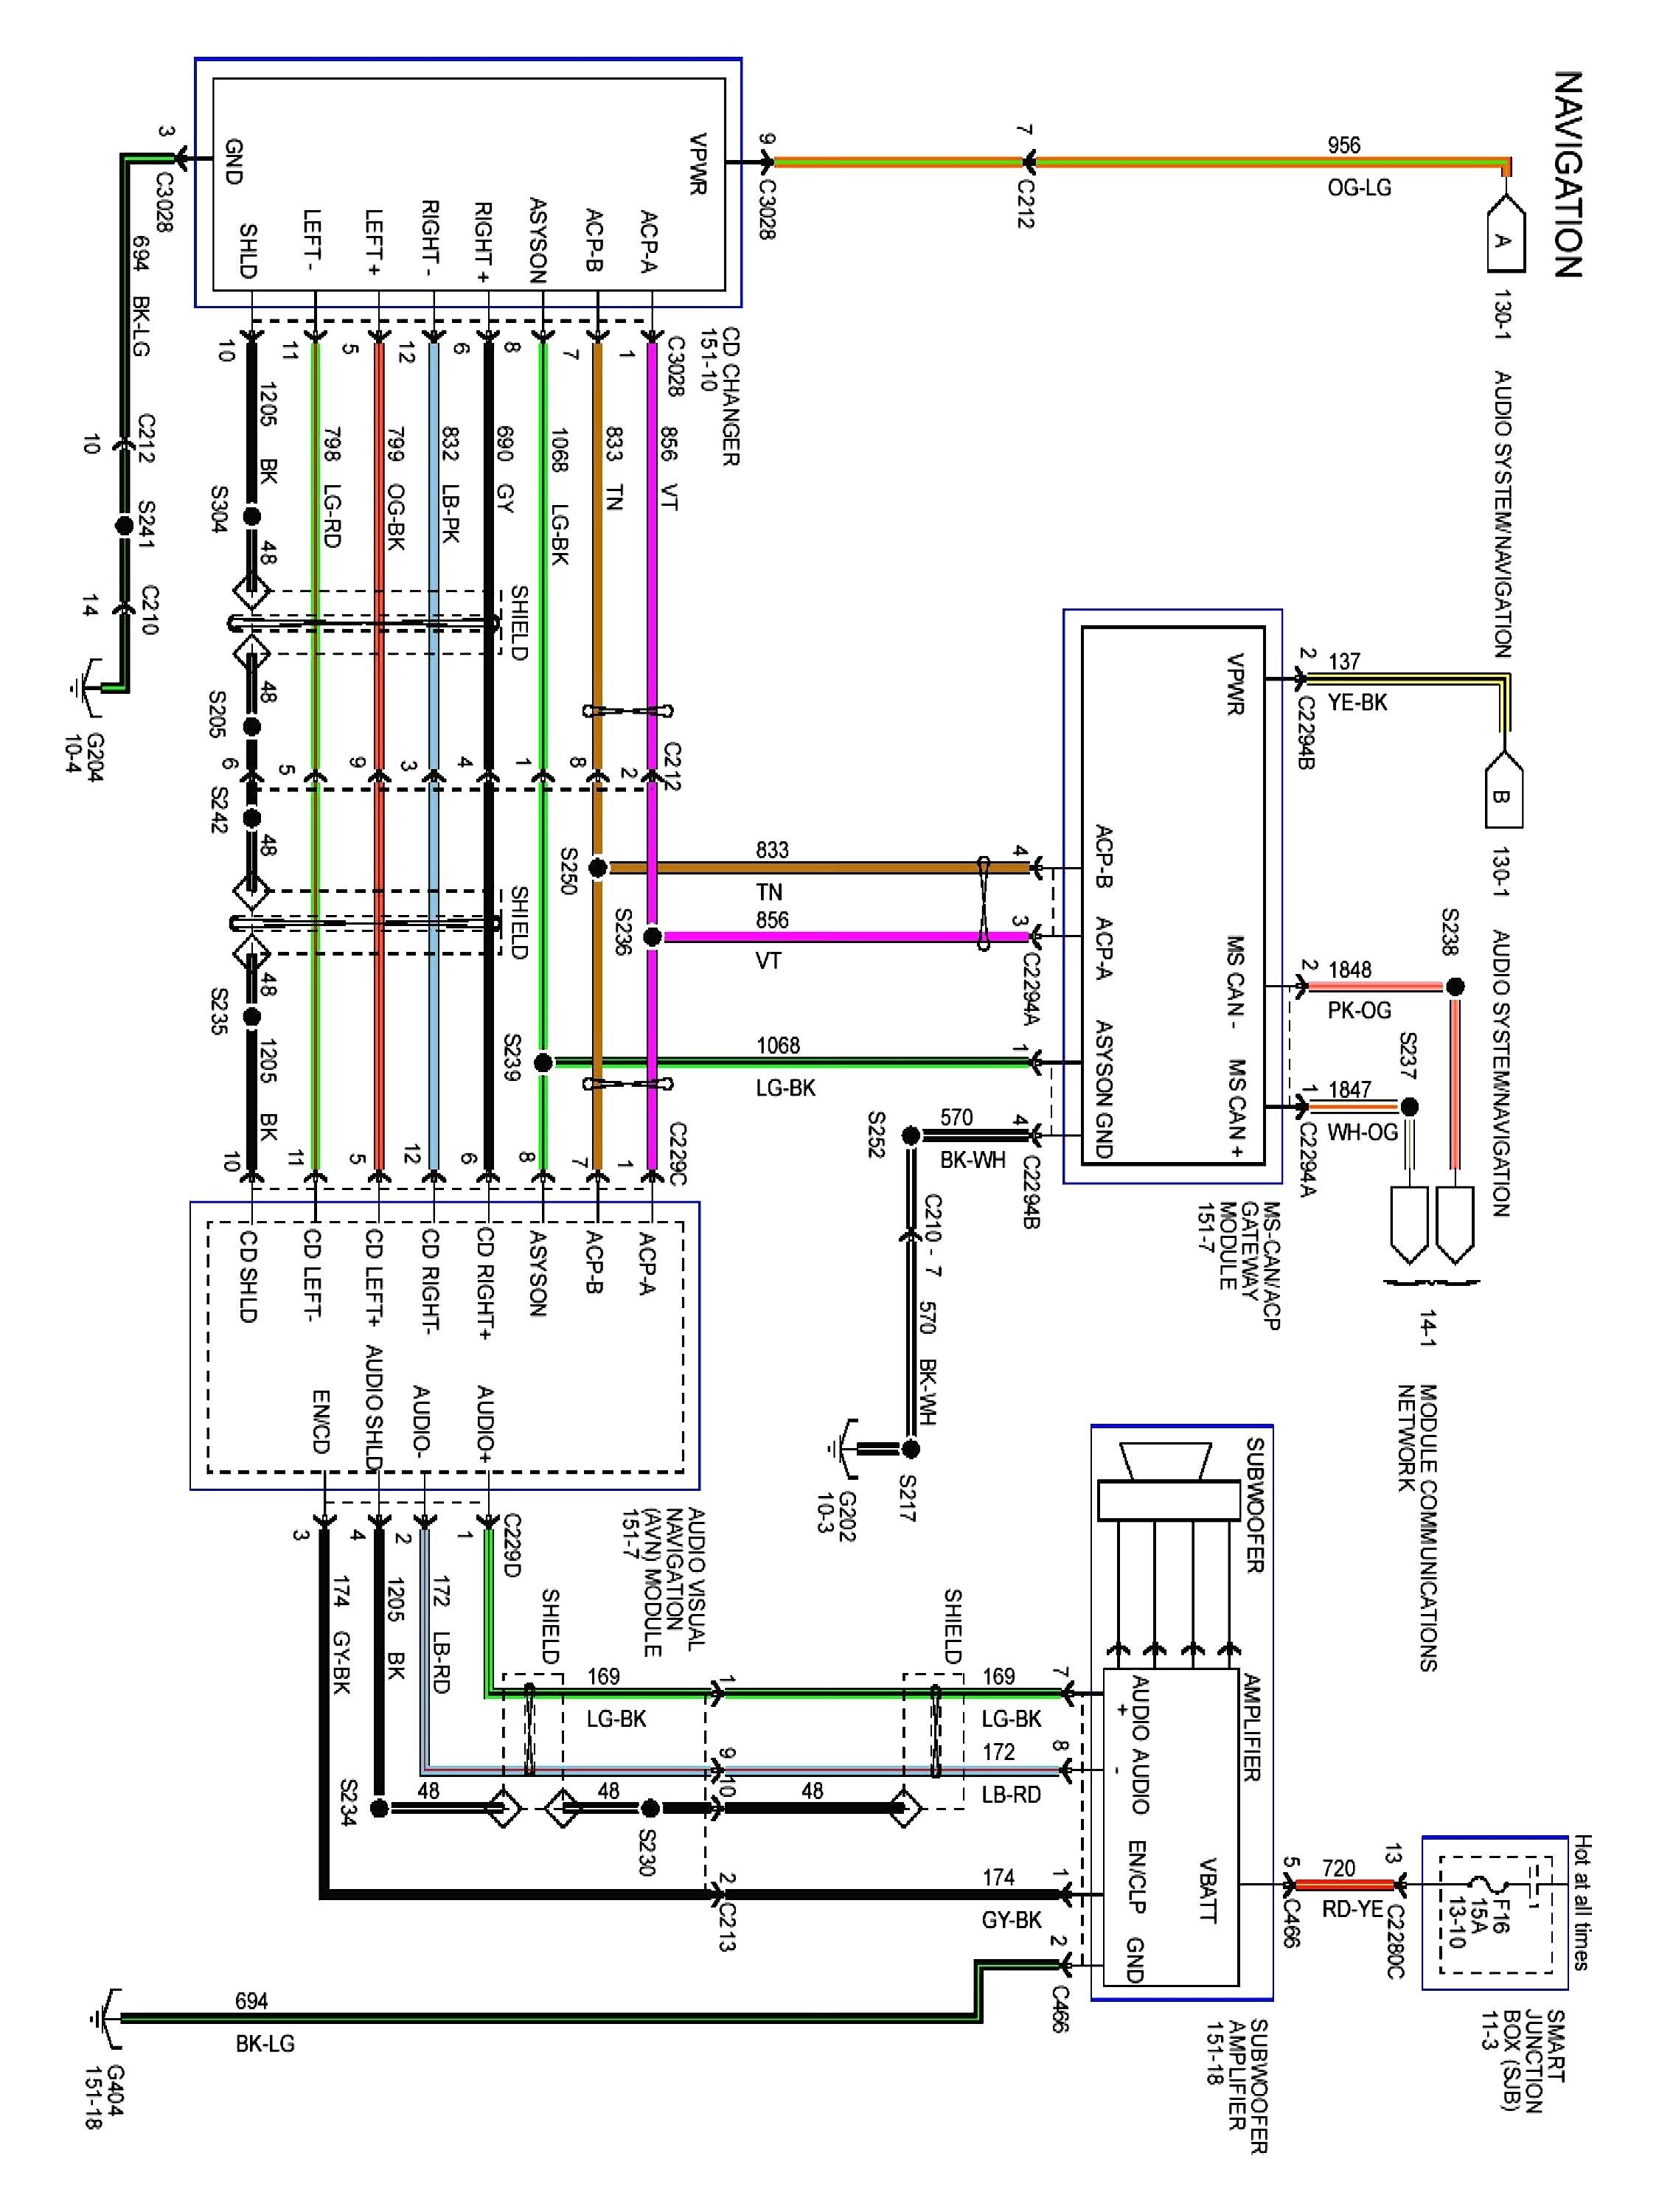 New 2011 Dodge Ram 1500 Radio Wiring Diagram #diagram #diagramsample  #diagramtemplate #wiringdiagr… | Ford expedition, Electrical wiring diagram,  Electrical diagramPinterest